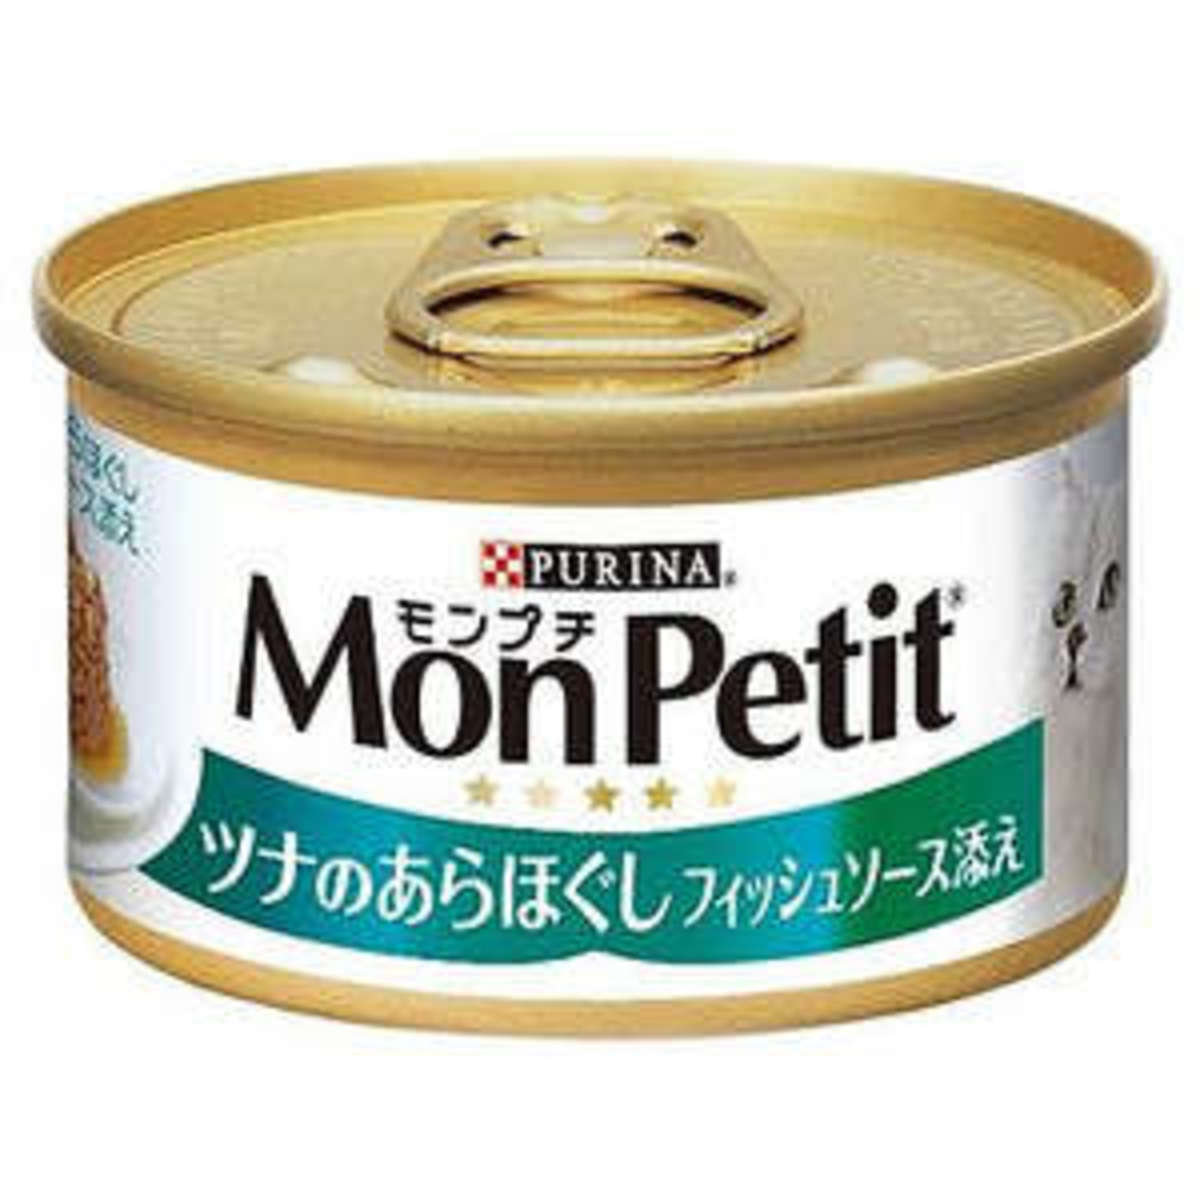 Grilled Tuna Cat Canned